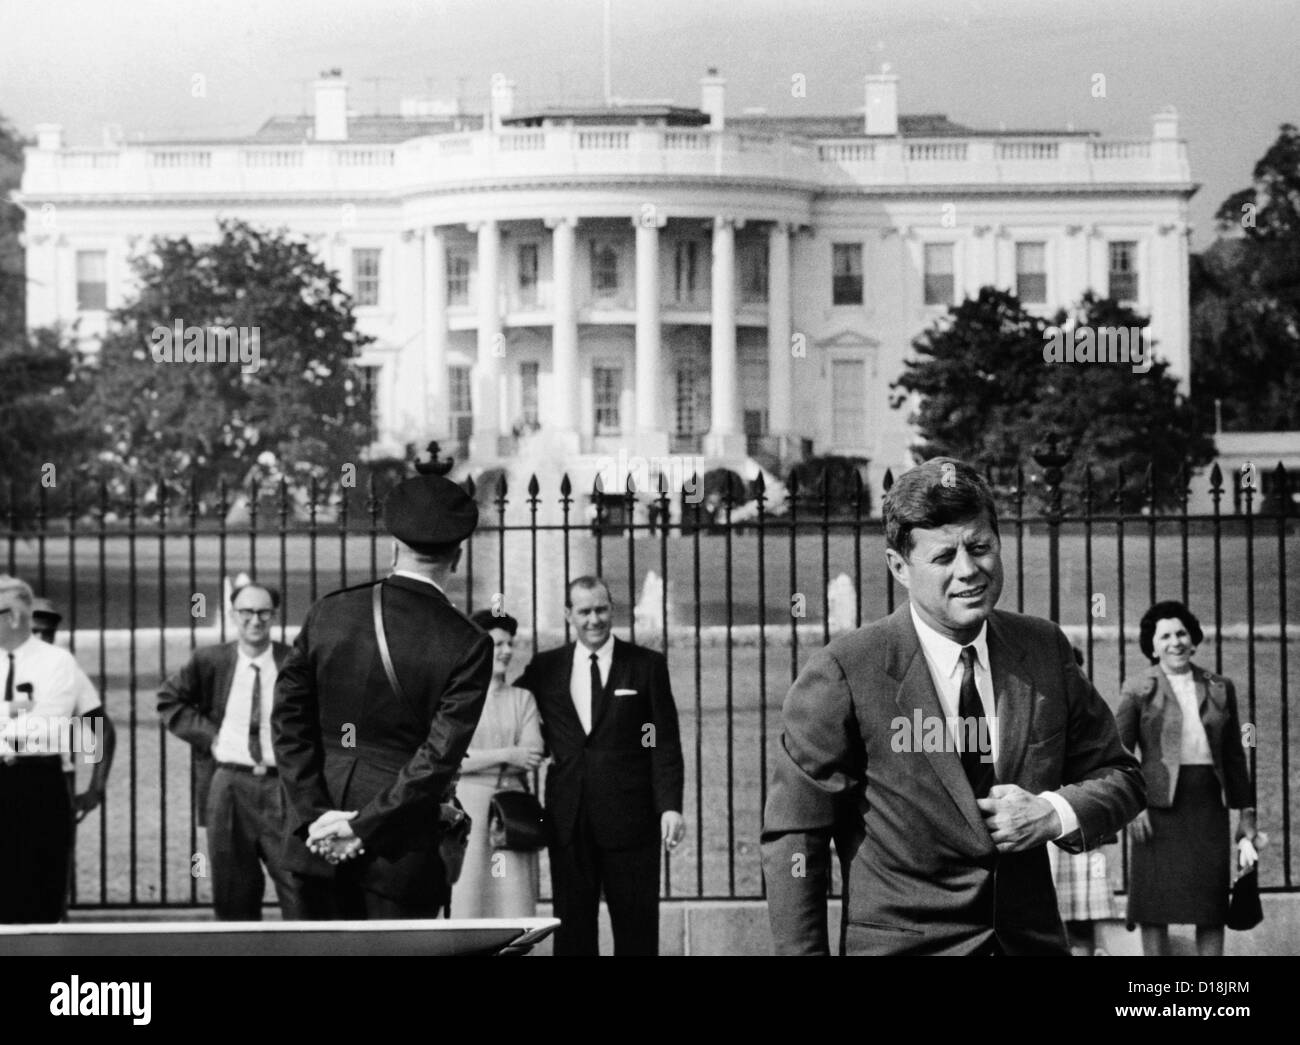 President John Kennedy in front of the White House. He is taking a short walk to his helicopter. Oct. 15, 1962. Stock Photo